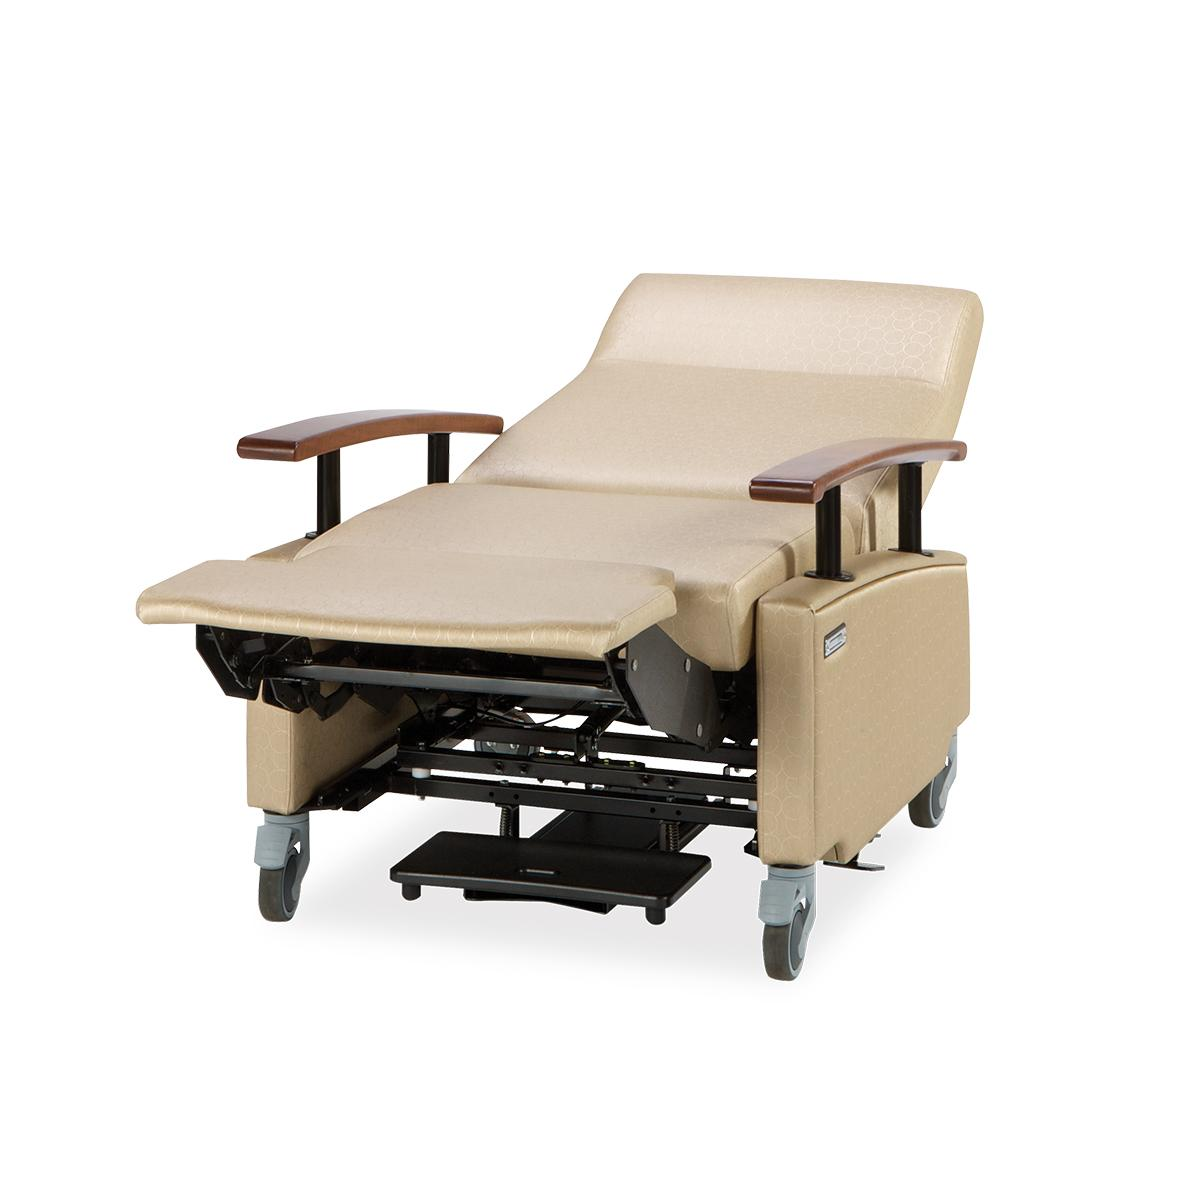 Art of Care Lay Flat Recliner, beige, in reclined position